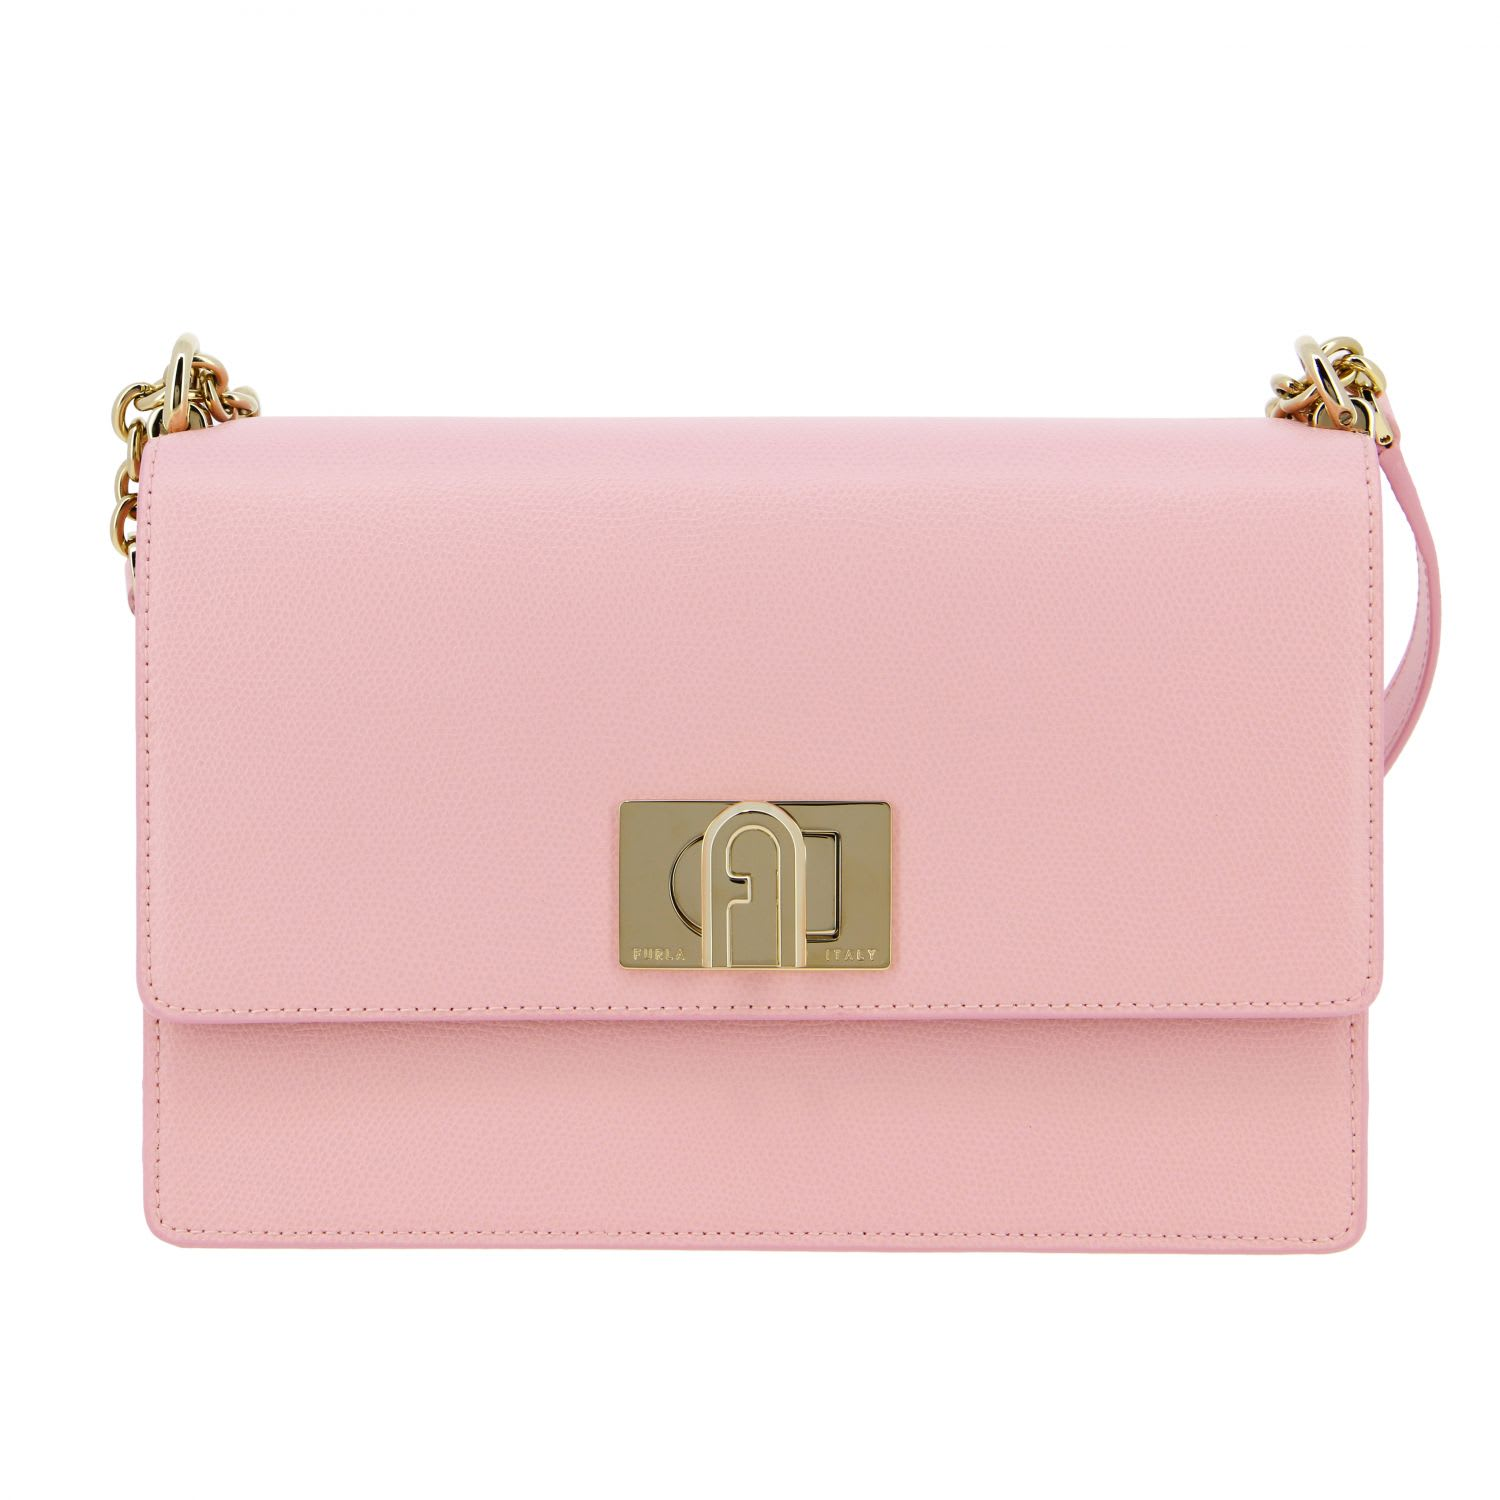 Furla 1927 Shoulder Bag In Textured Leather In Pink